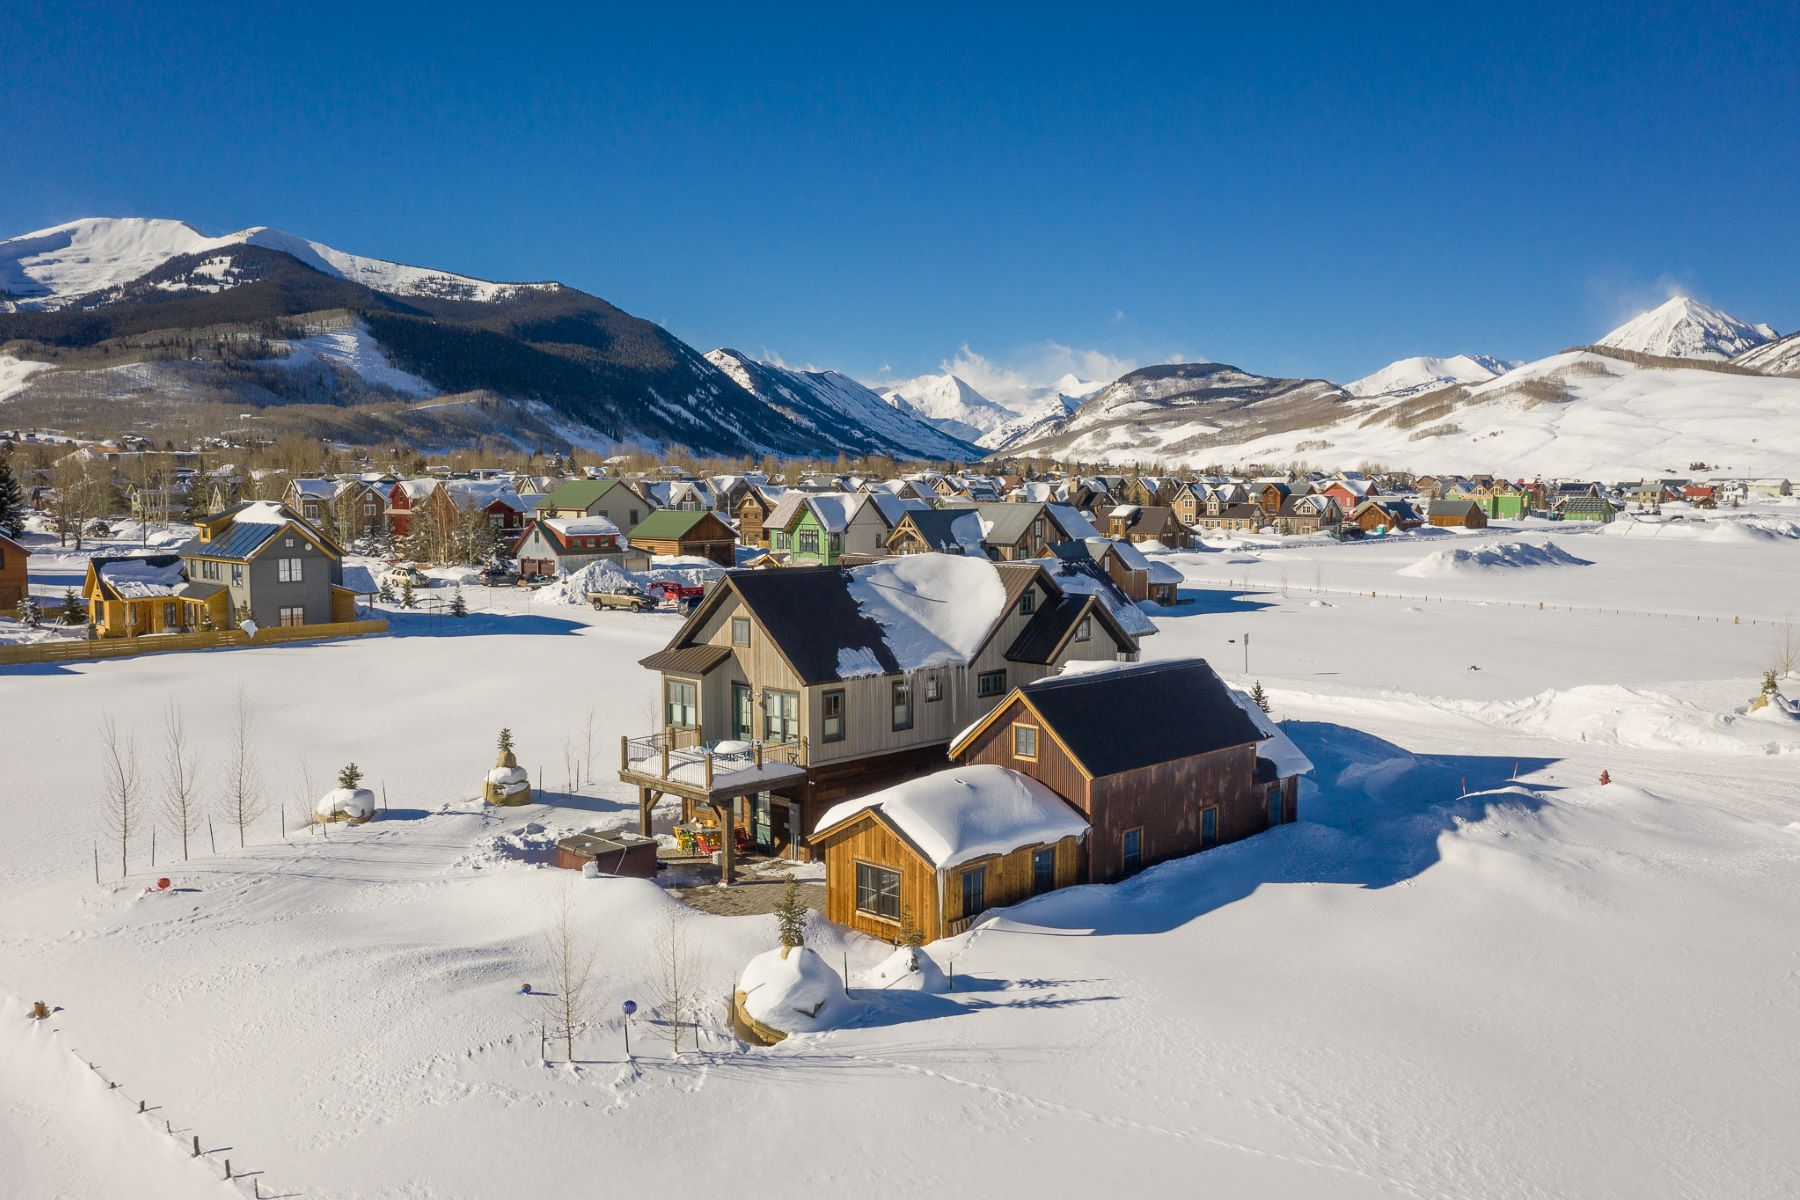 Single Family Homes for Sale at 926 Belleview Avenue Crested Butte, Colorado 81224 United States